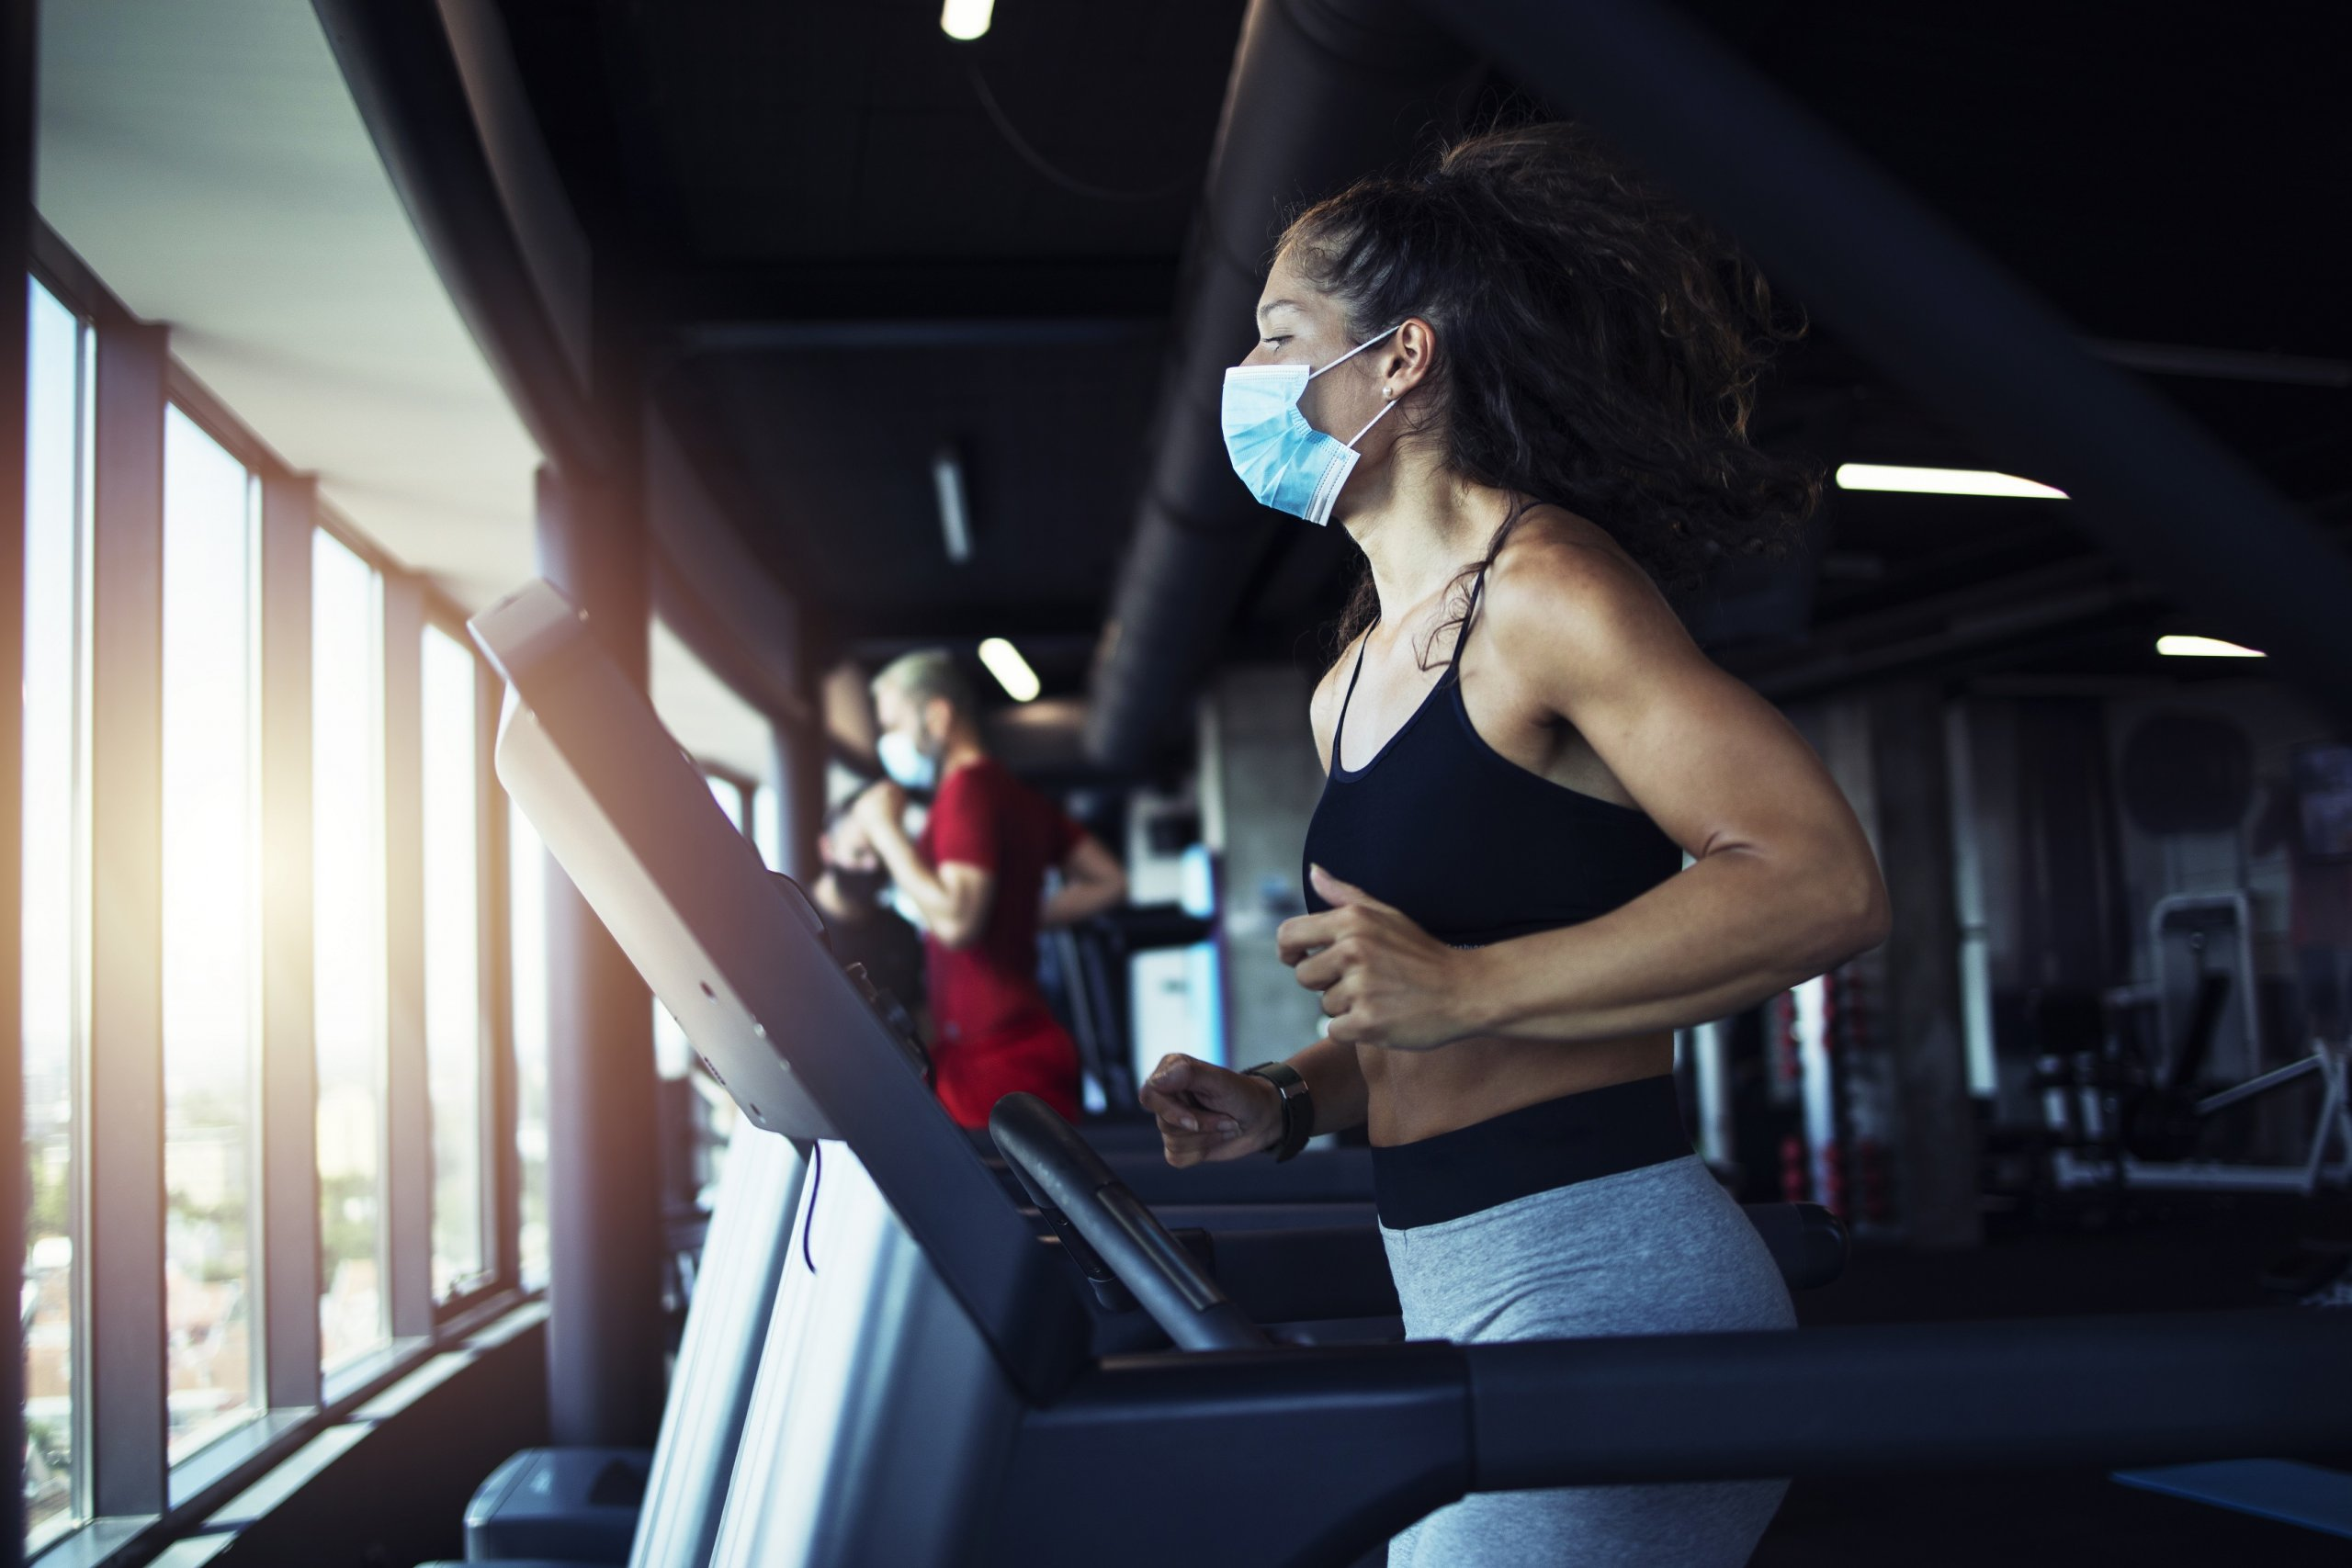 Indoor gyms: Does the risk to others outweigh my benefit?